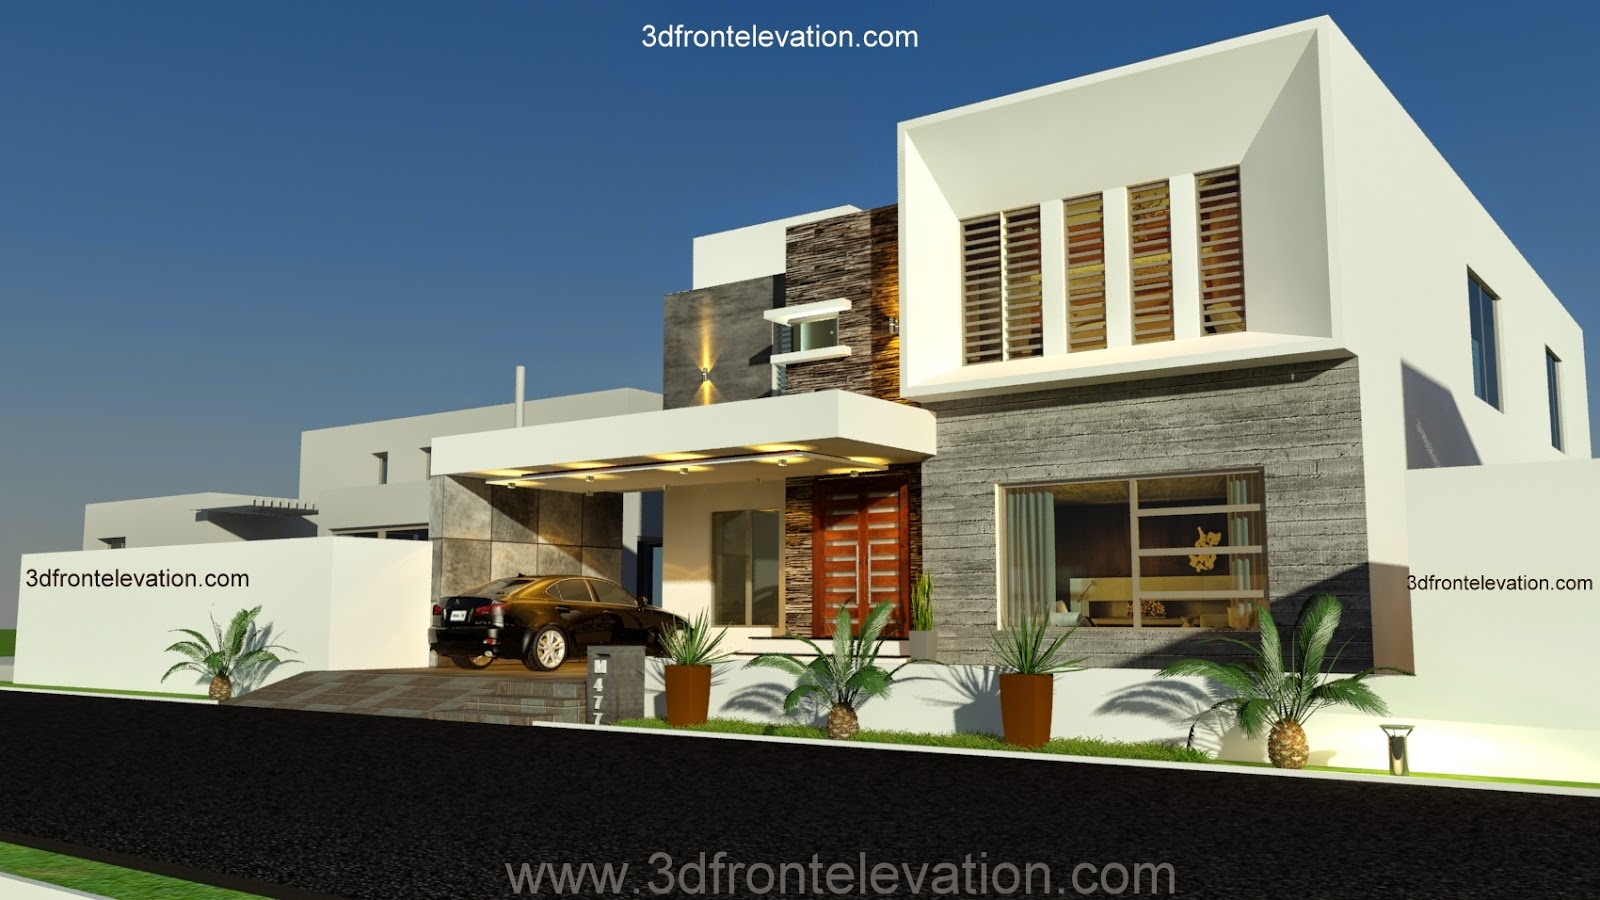 residential house plans discover house plans residential house plans star dreams homes